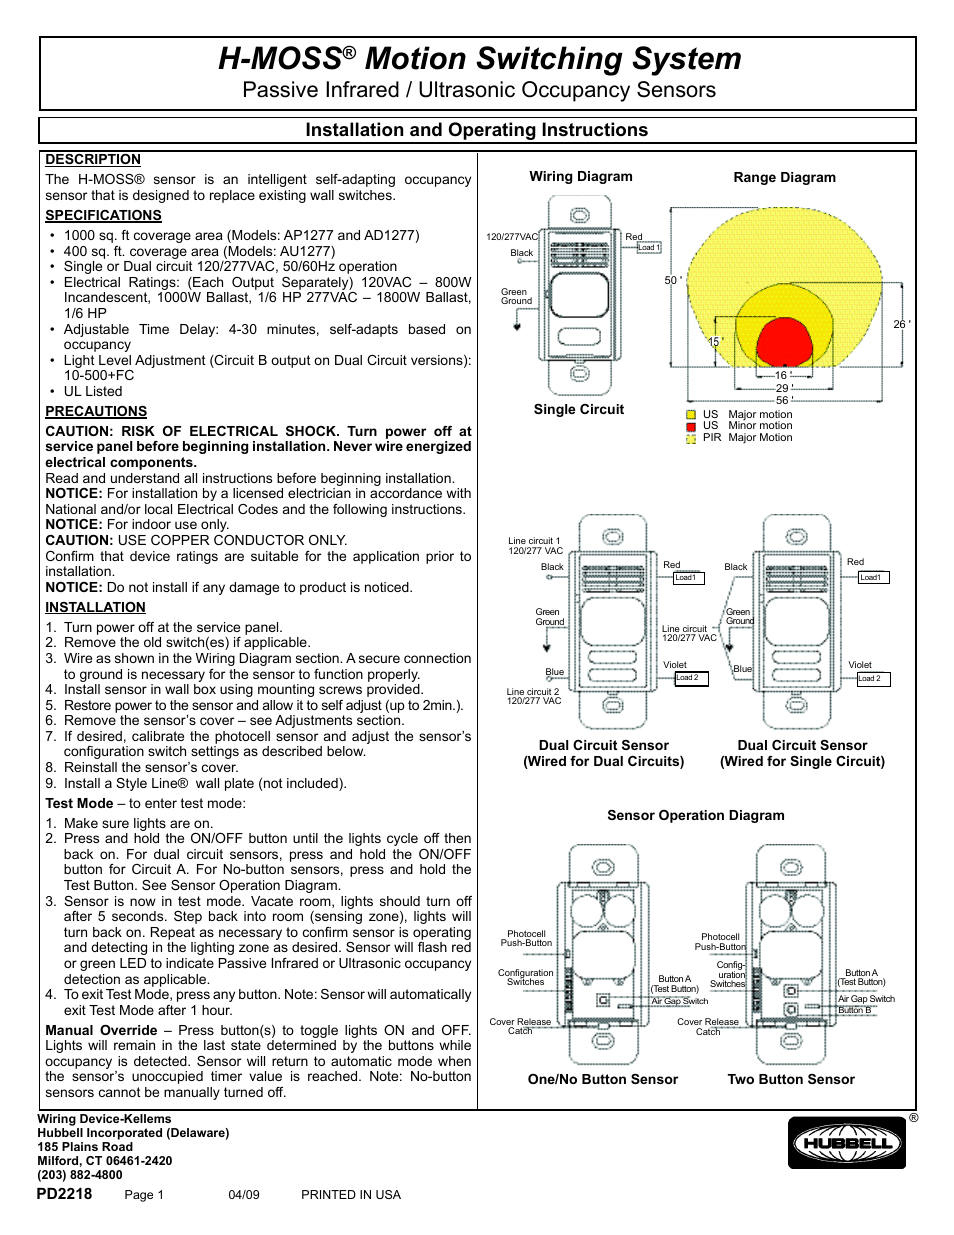 hight resolution of passive infrared ultrasonic occupancy sensors ap1277i1 ap1277i1n au1277i1 au1277i1n hubbell edtv clt2054 user manual page 10 19